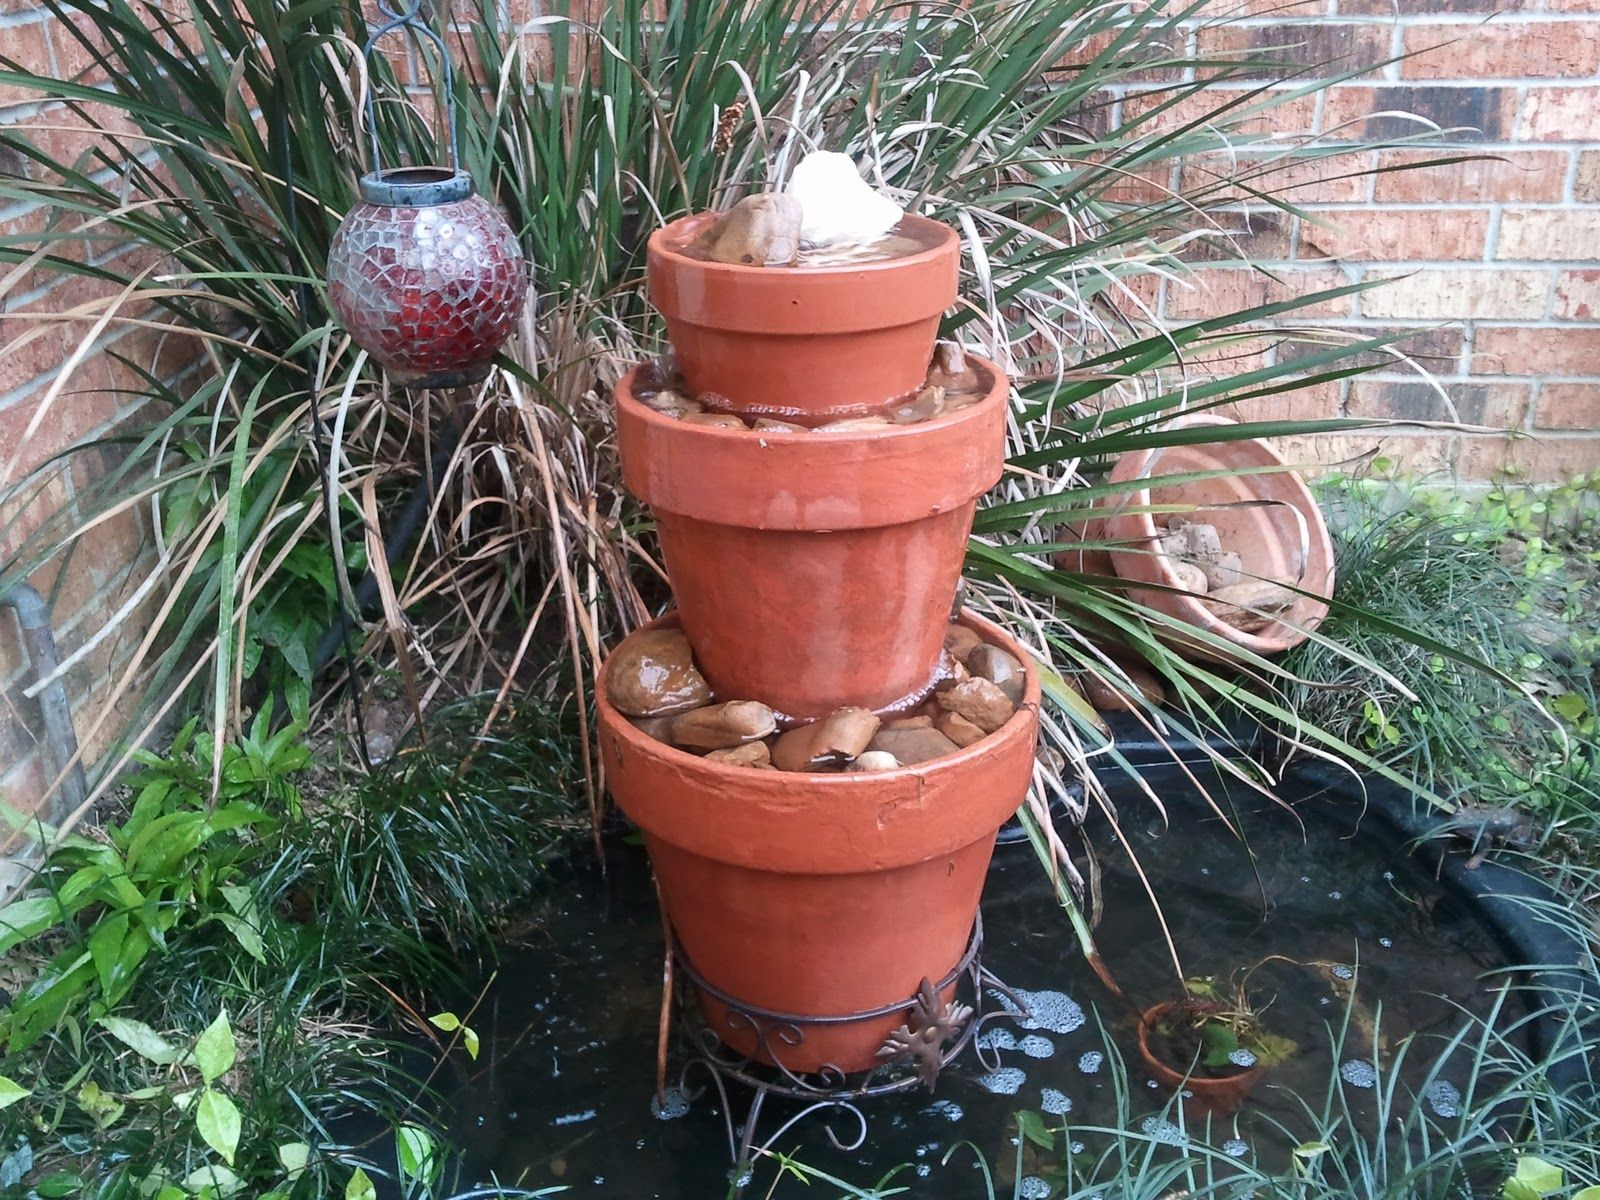 11 Amazing Water Fountains Made From Planters Garden Lovers Club Flower Pots Homemade Water Fountains Diy Garden Fountains